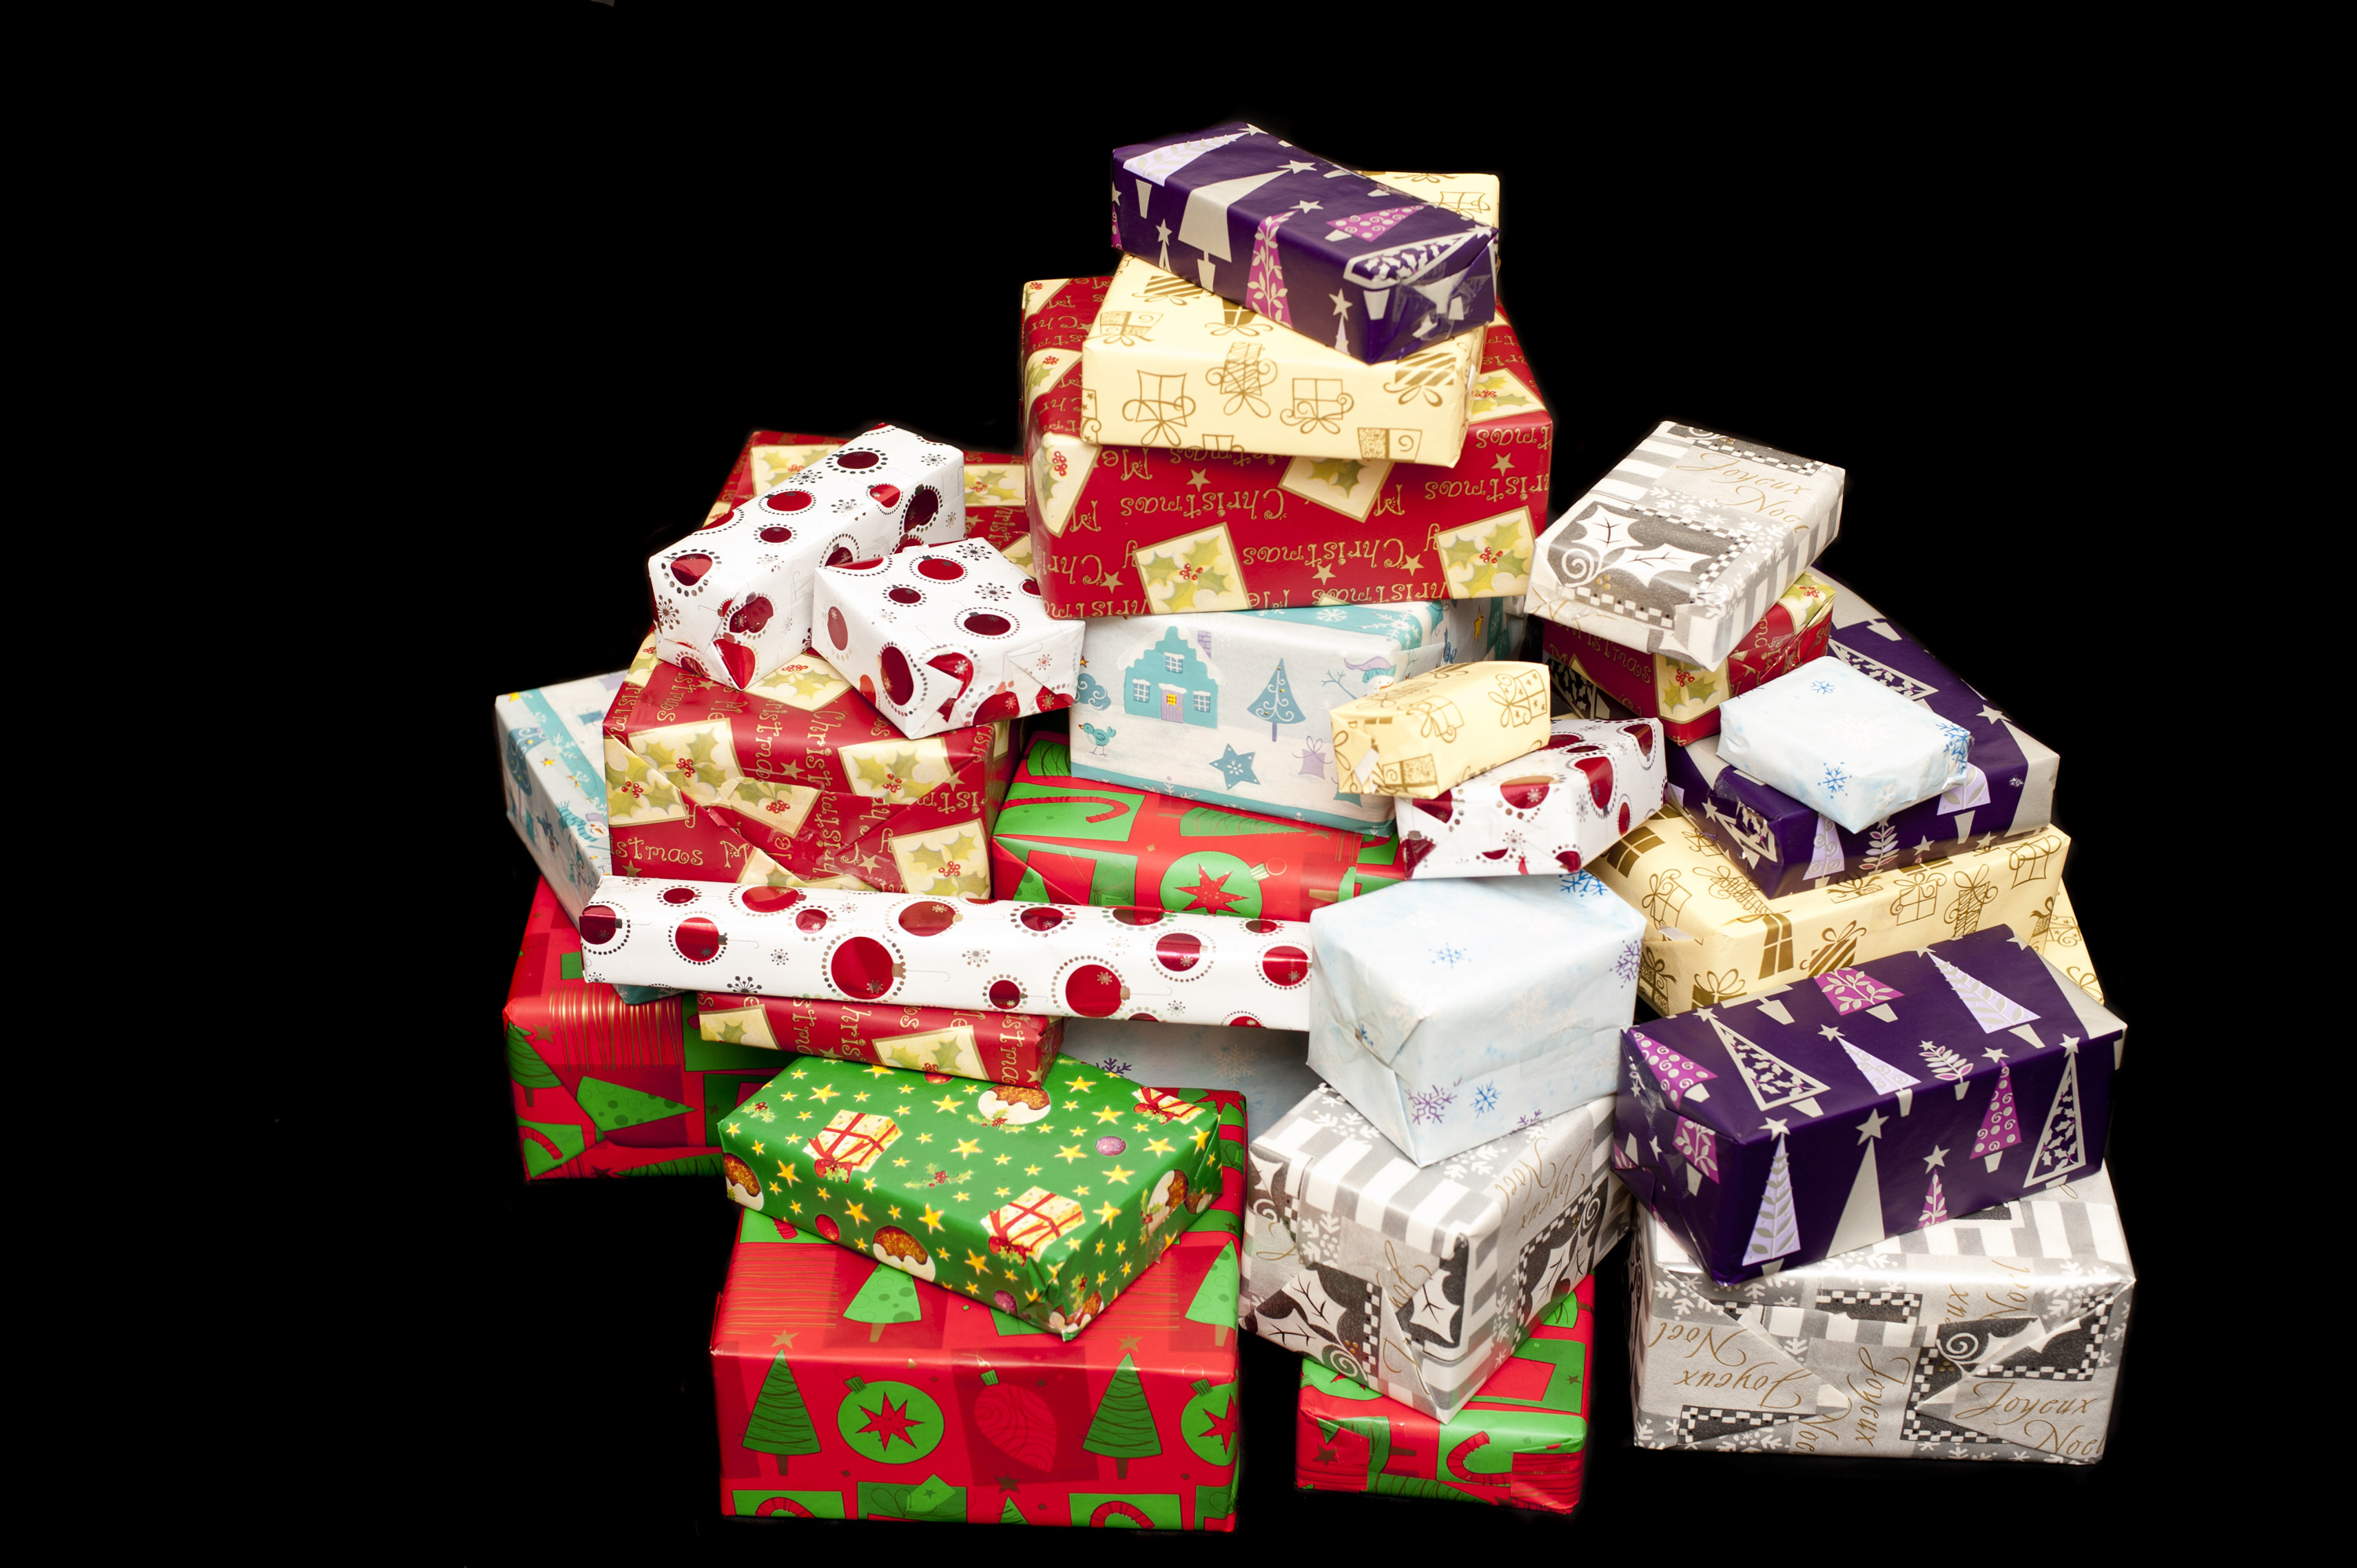 Pile of colorful Christmas gifts in assorted seasonal patterned wrapping paper on black with copy space